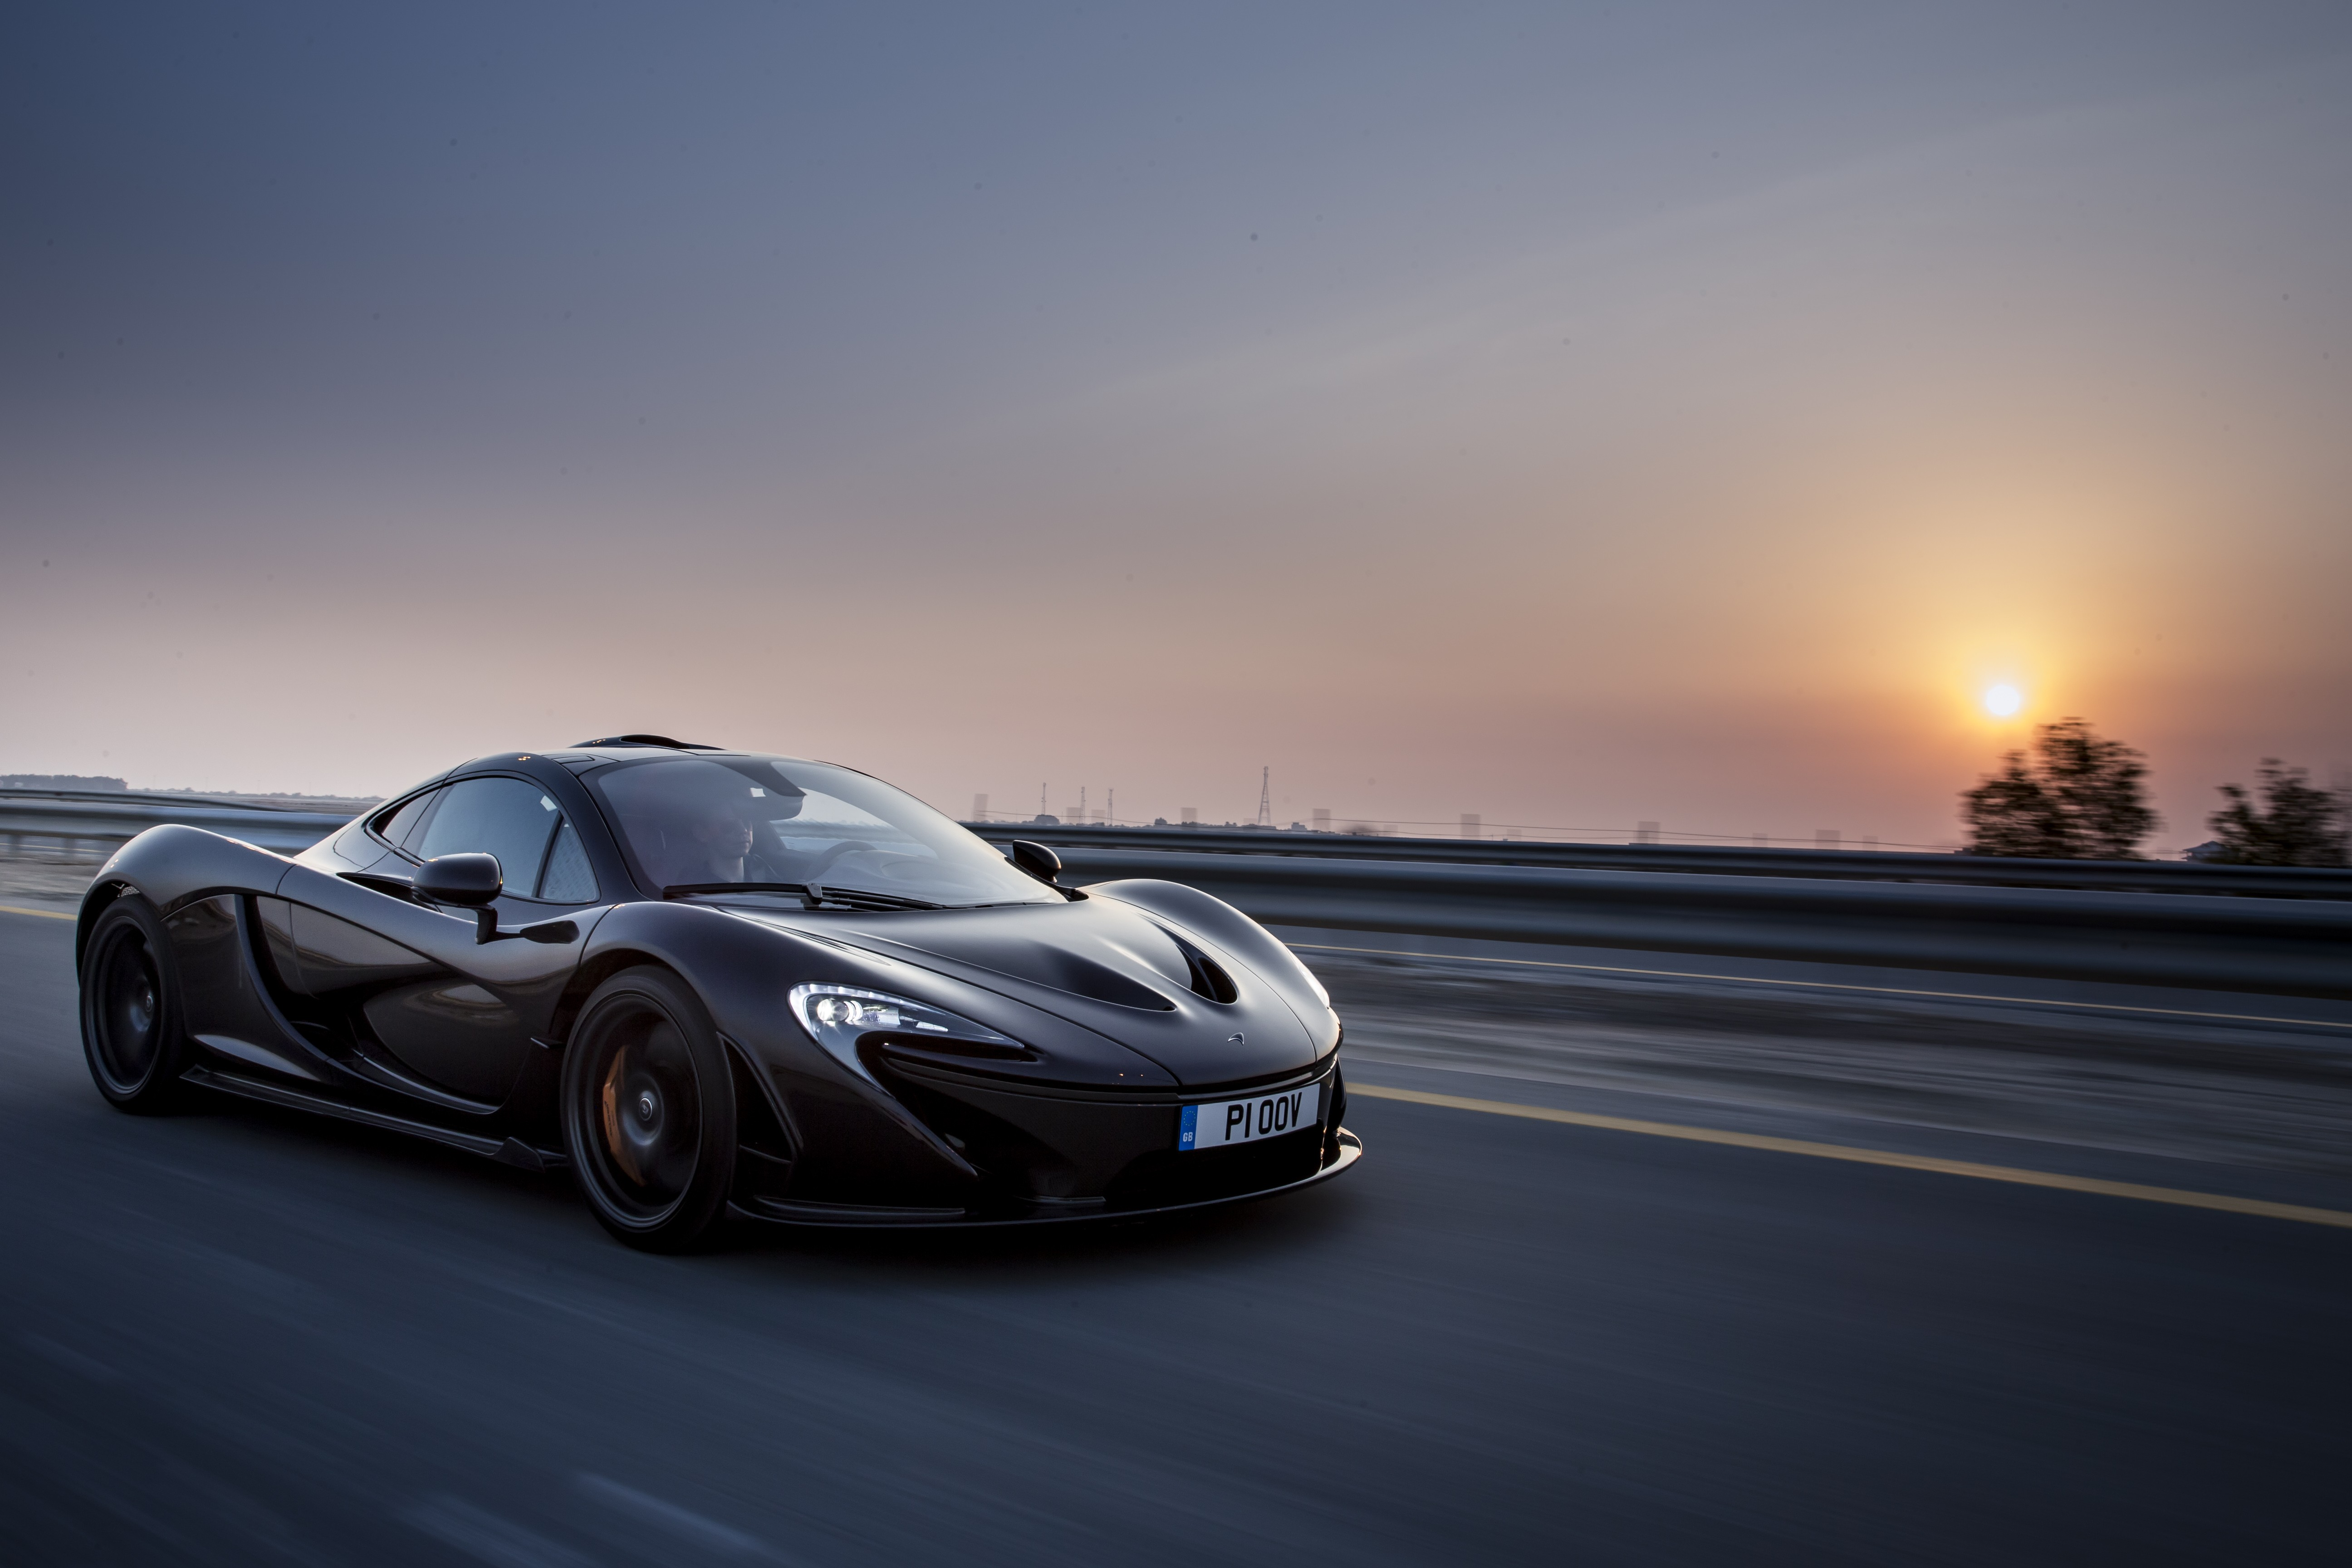 mclaren brings the curtain down on the p1 autoevolution. Black Bedroom Furniture Sets. Home Design Ideas